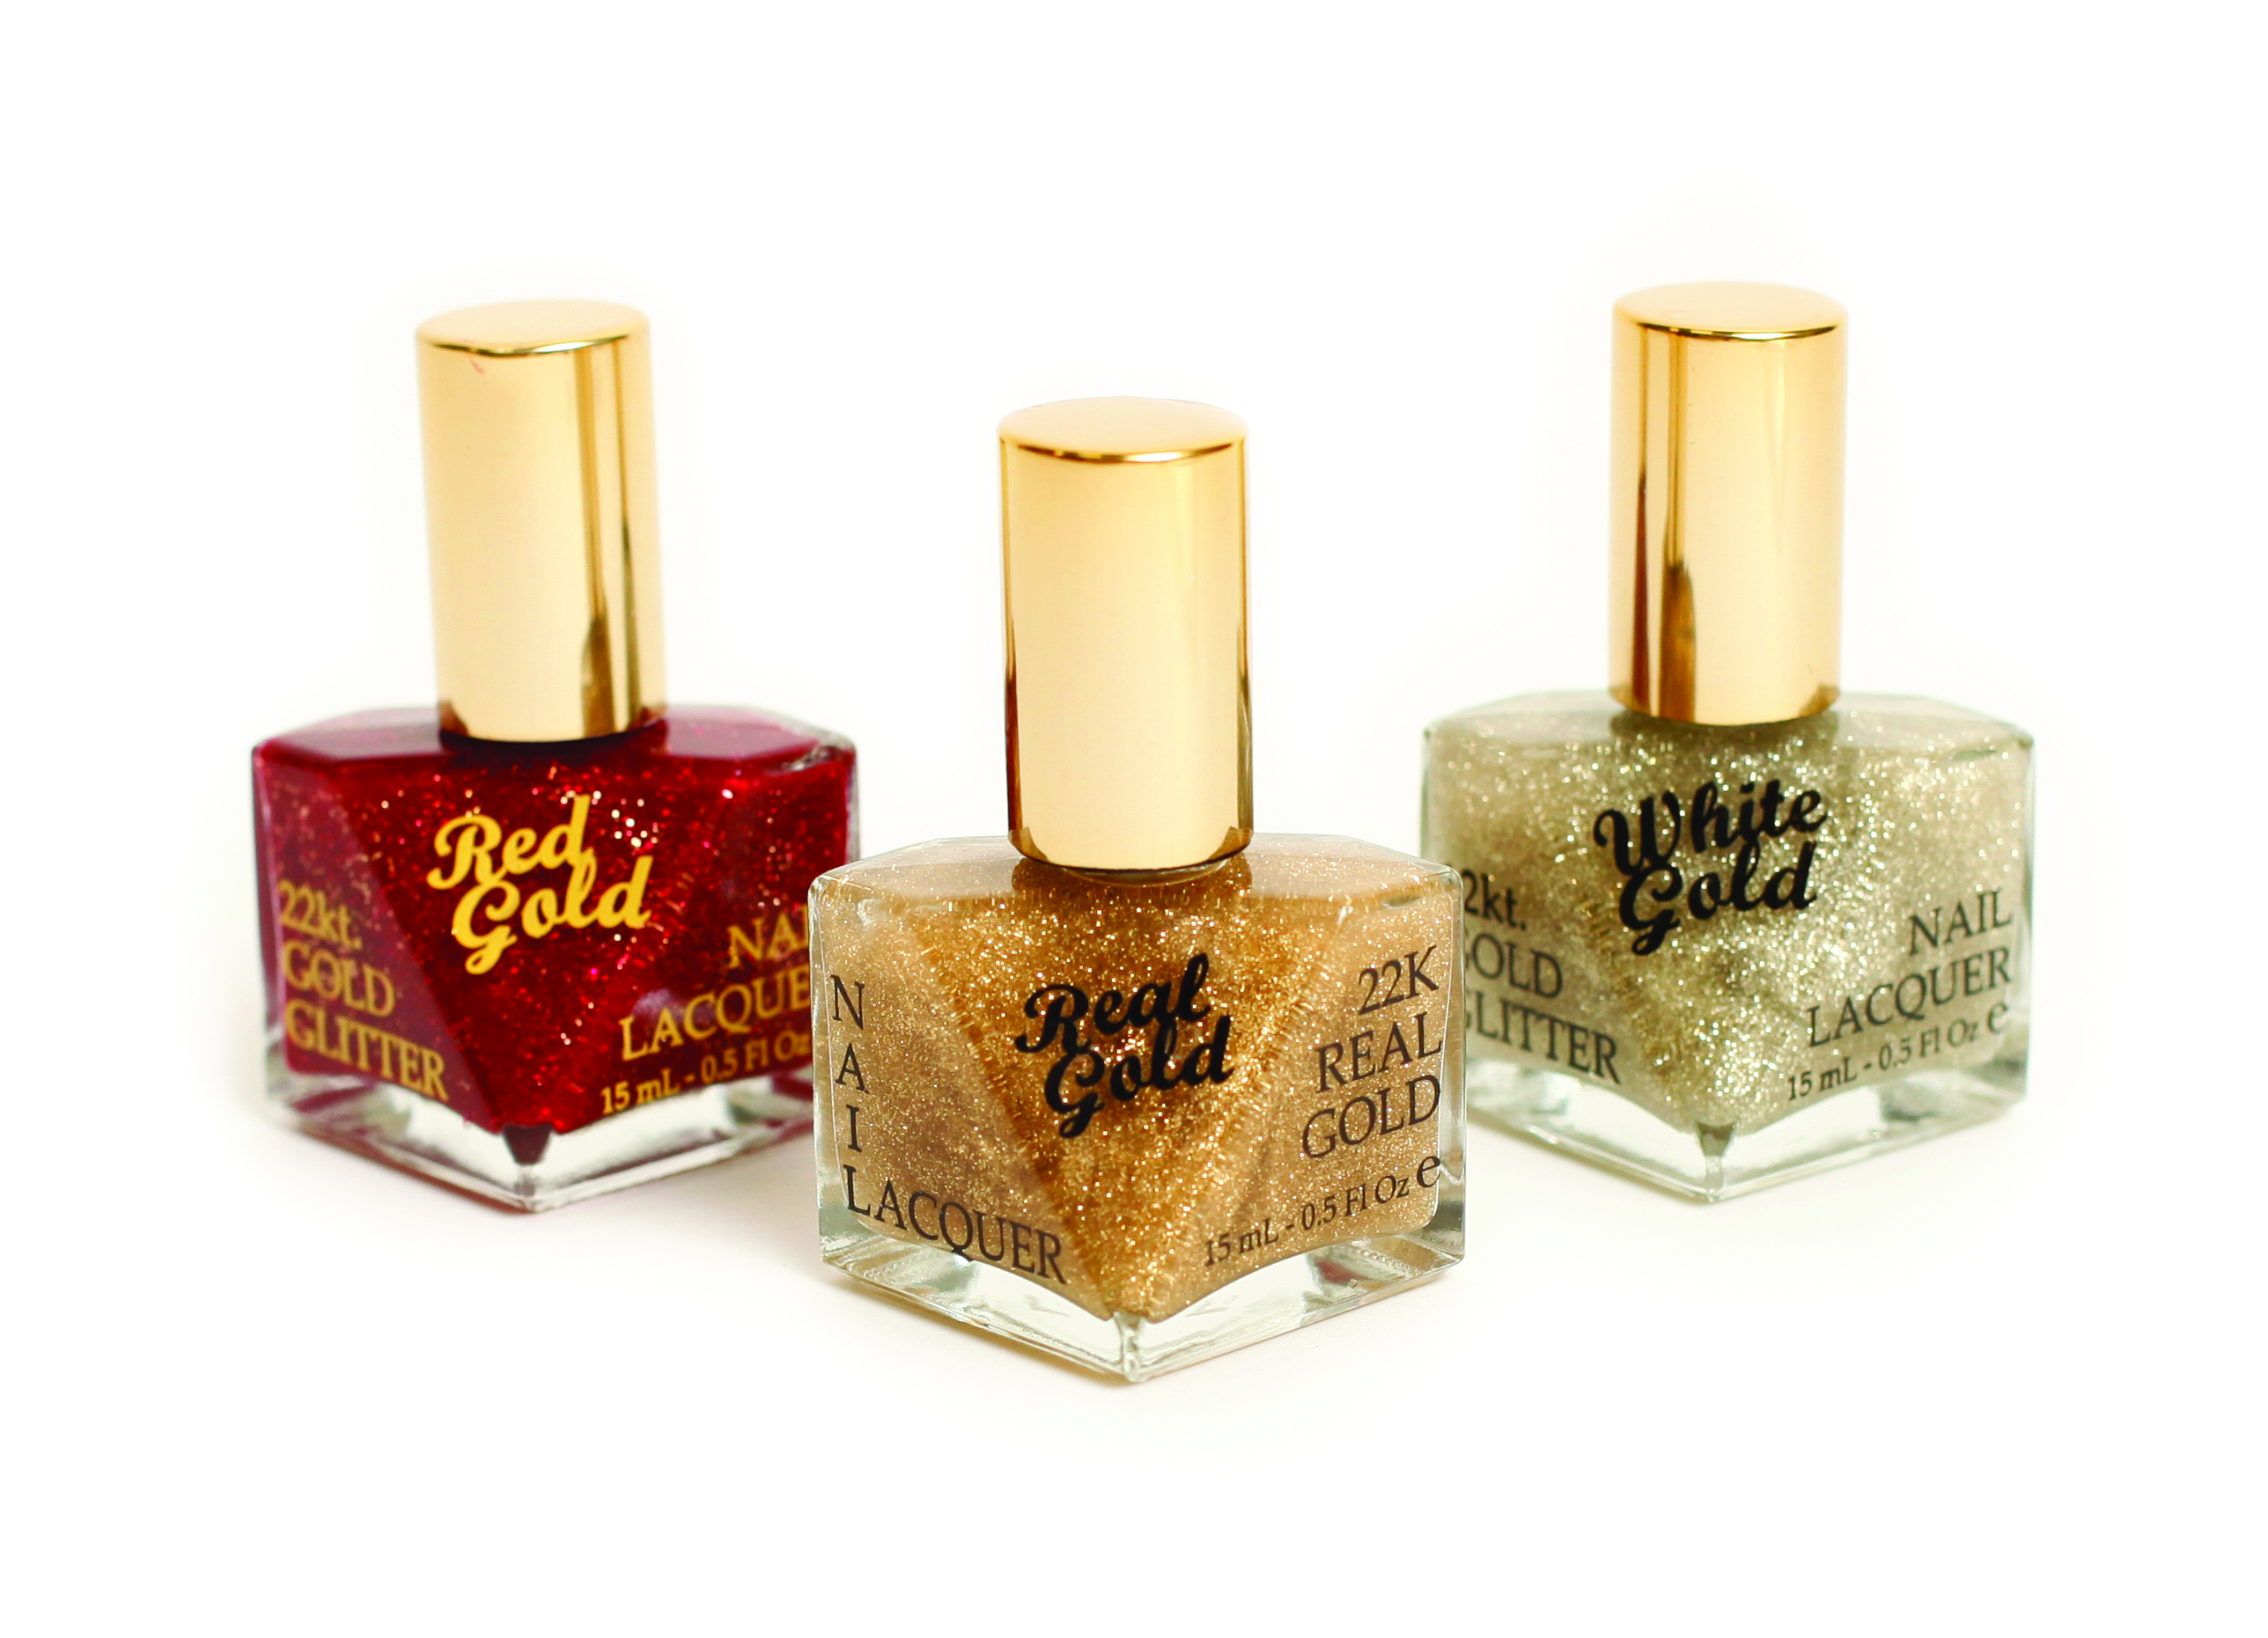 Real Gold and Silver Top Coats